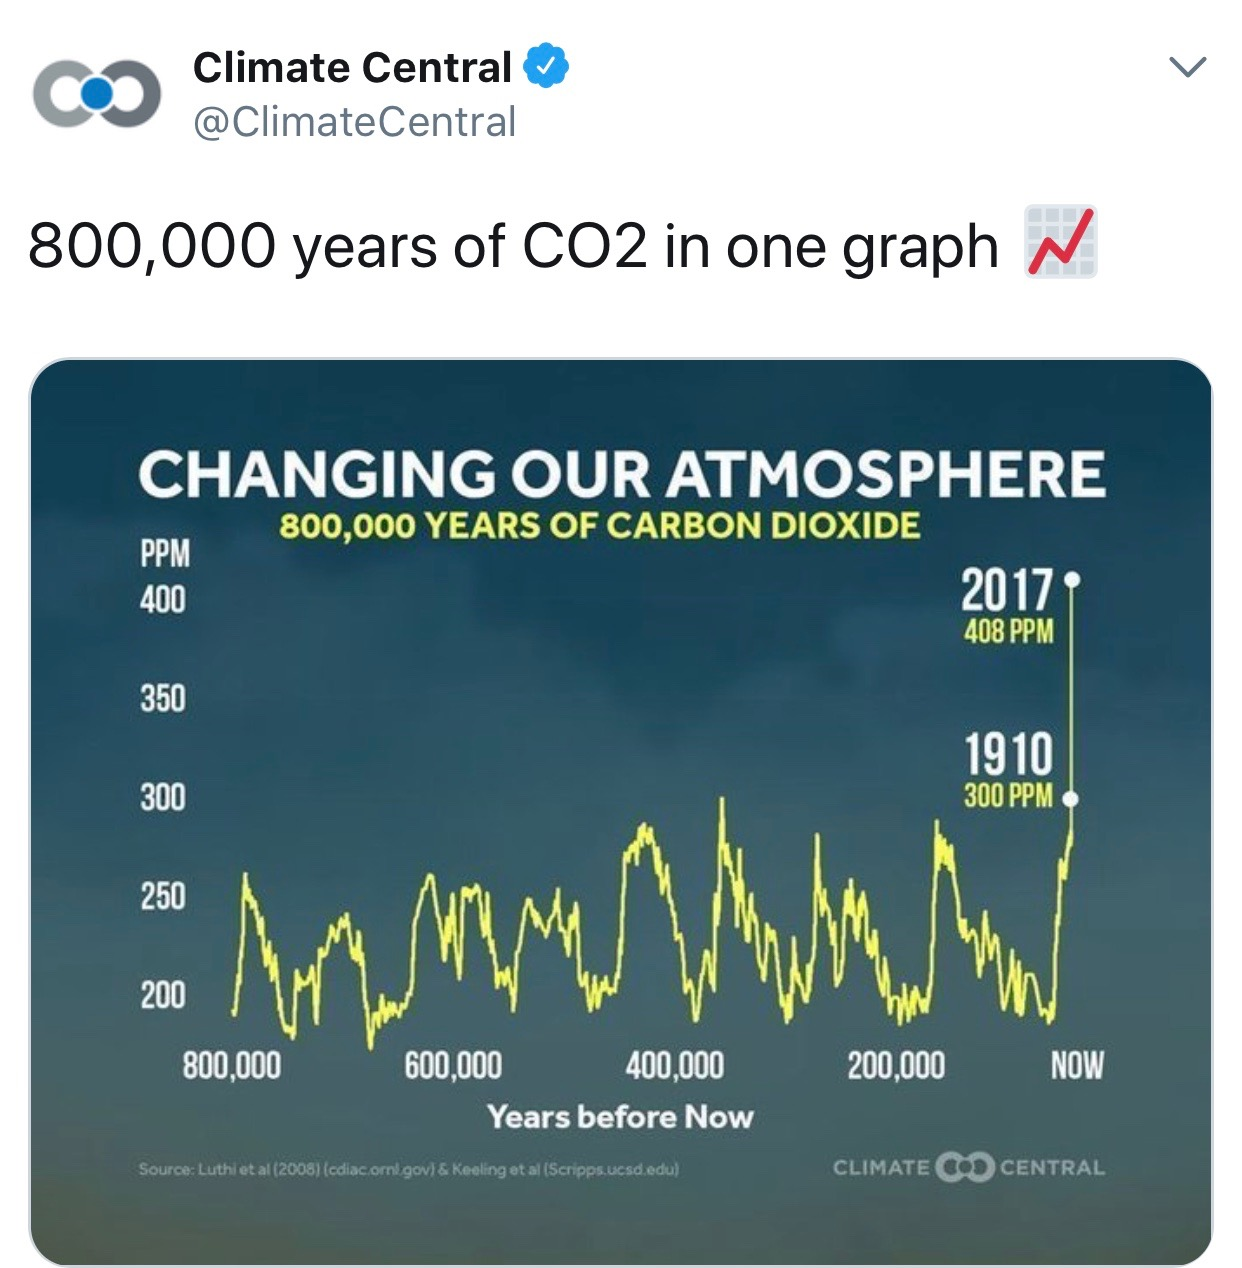 Although they have fluctuated over time, CO2 levels remained under 300 parts per million (PPM) for the past 800,000 years until about 1900. Since then they have soared by about 60%. This rapidity of change is unprecedented in the history of the earth.